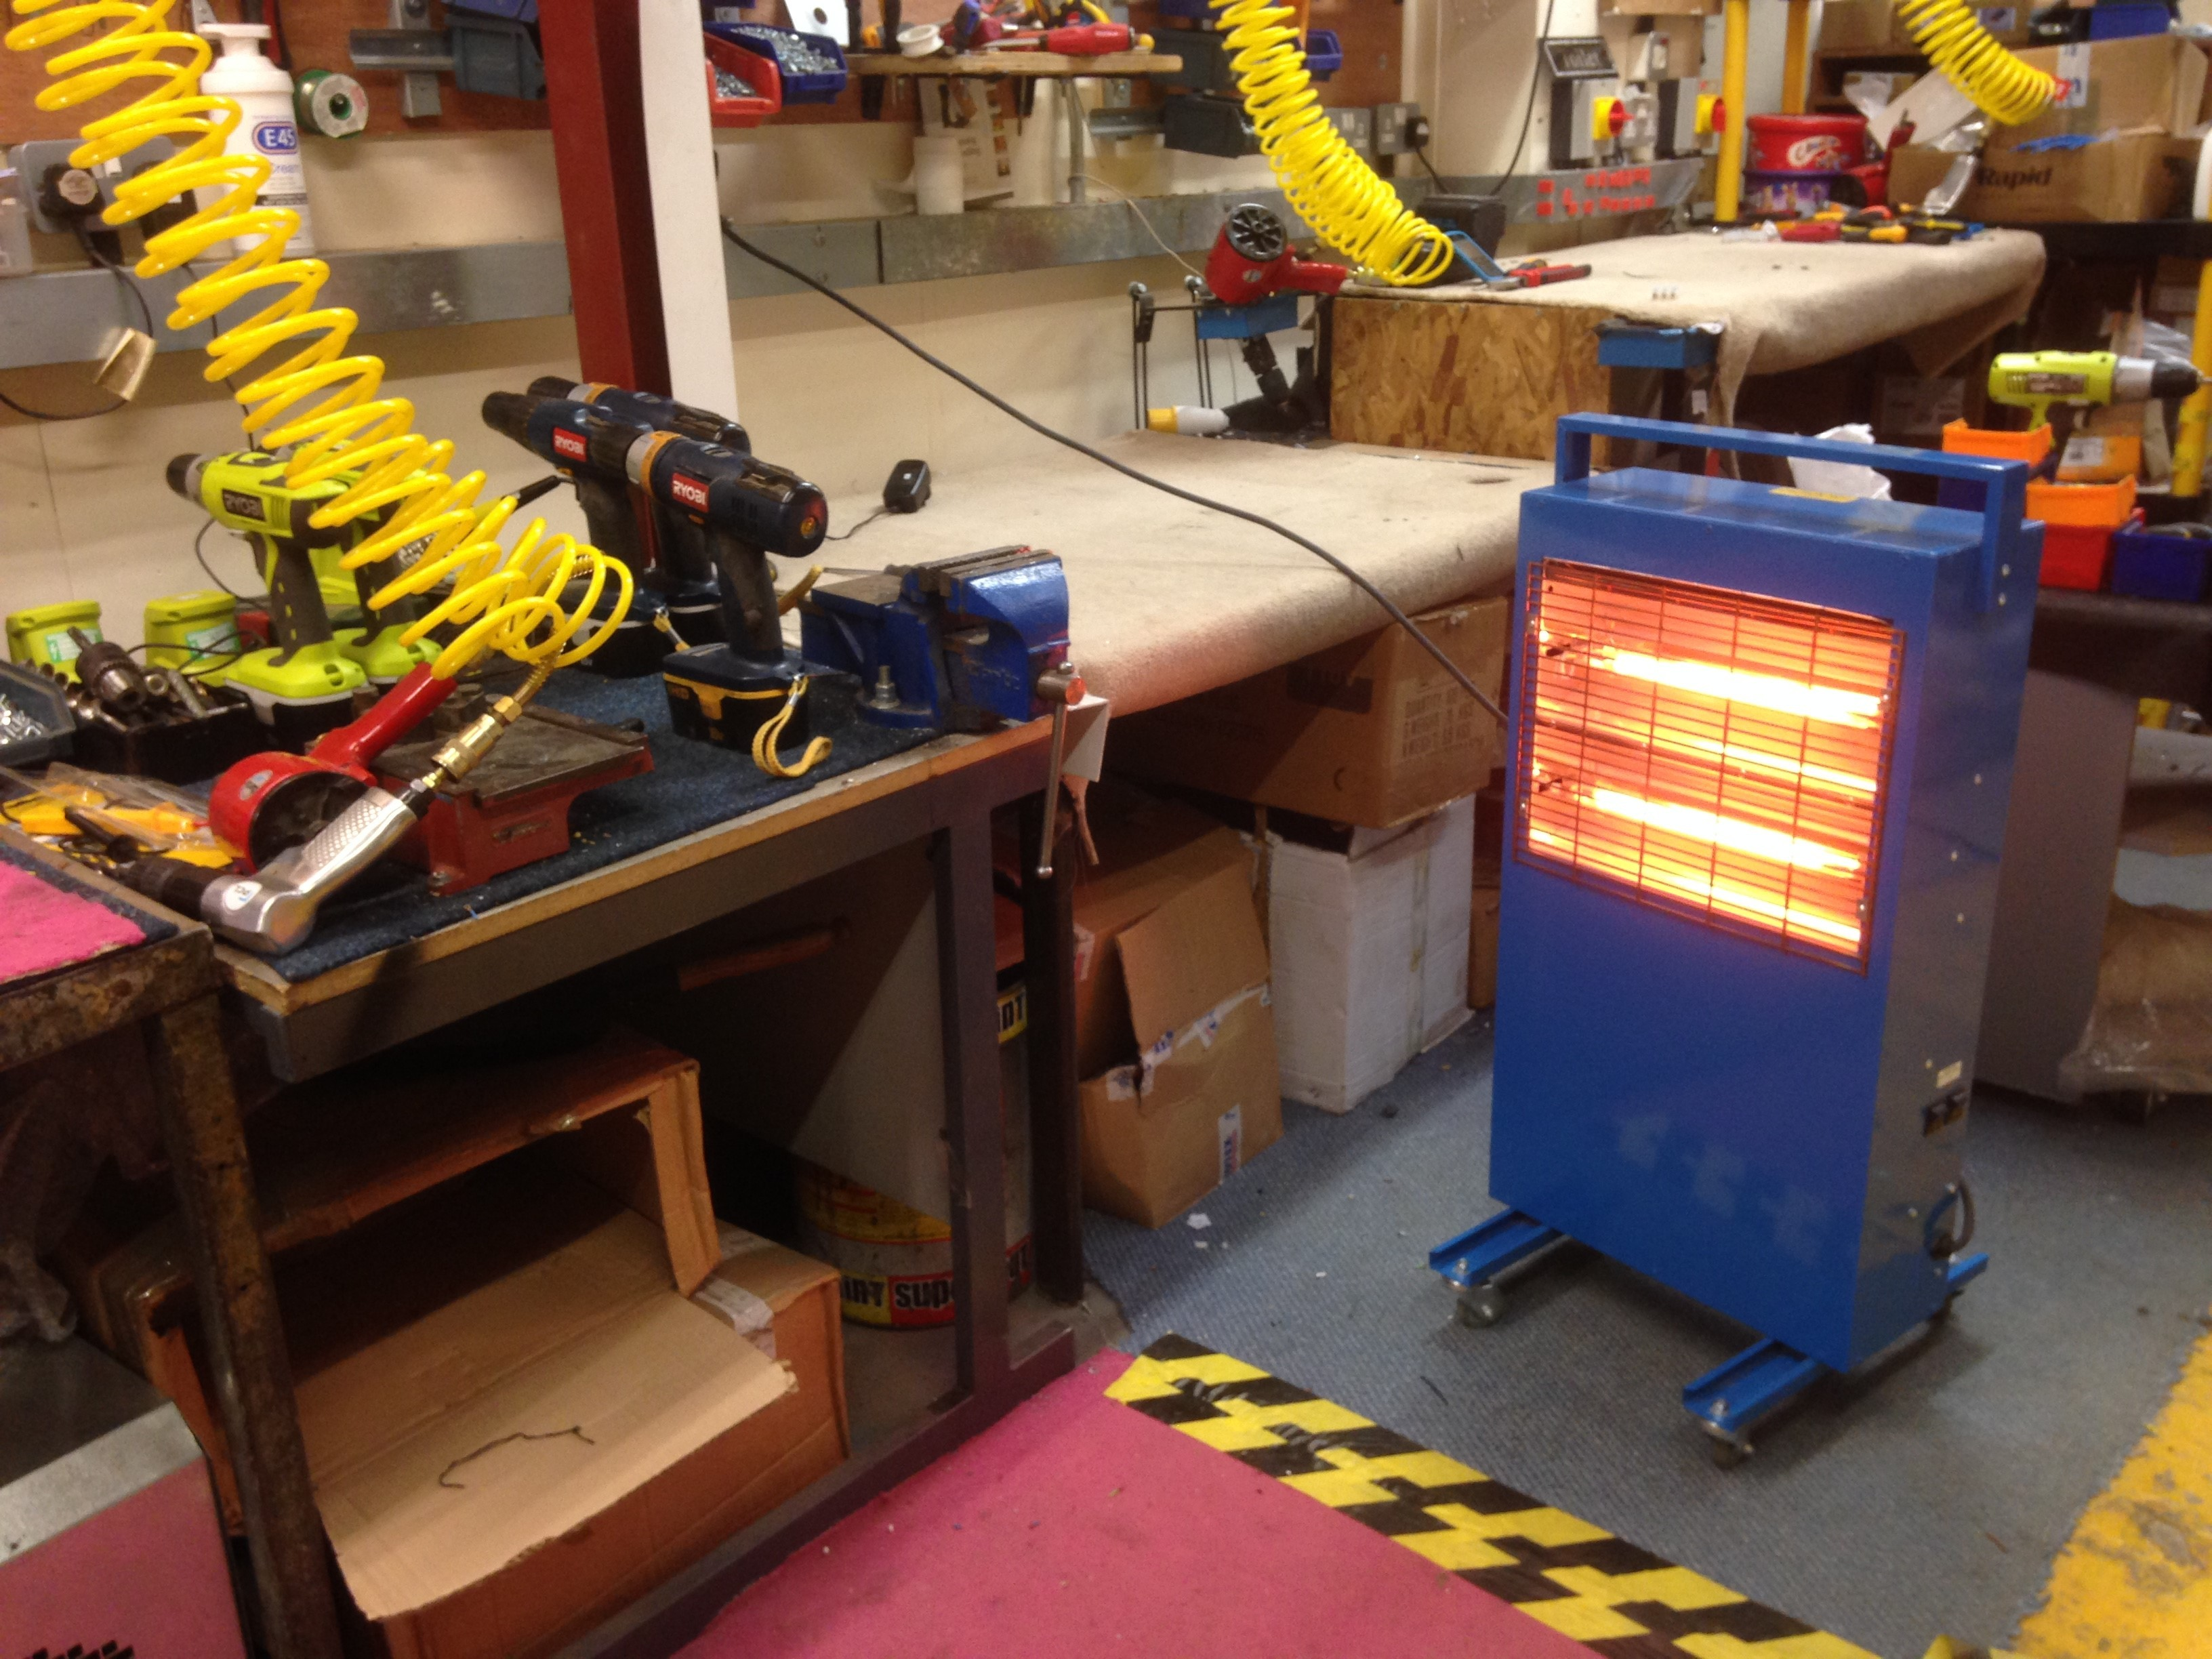 portable infrared heaters UK, portable infrared heaters,mobile infrared heaters